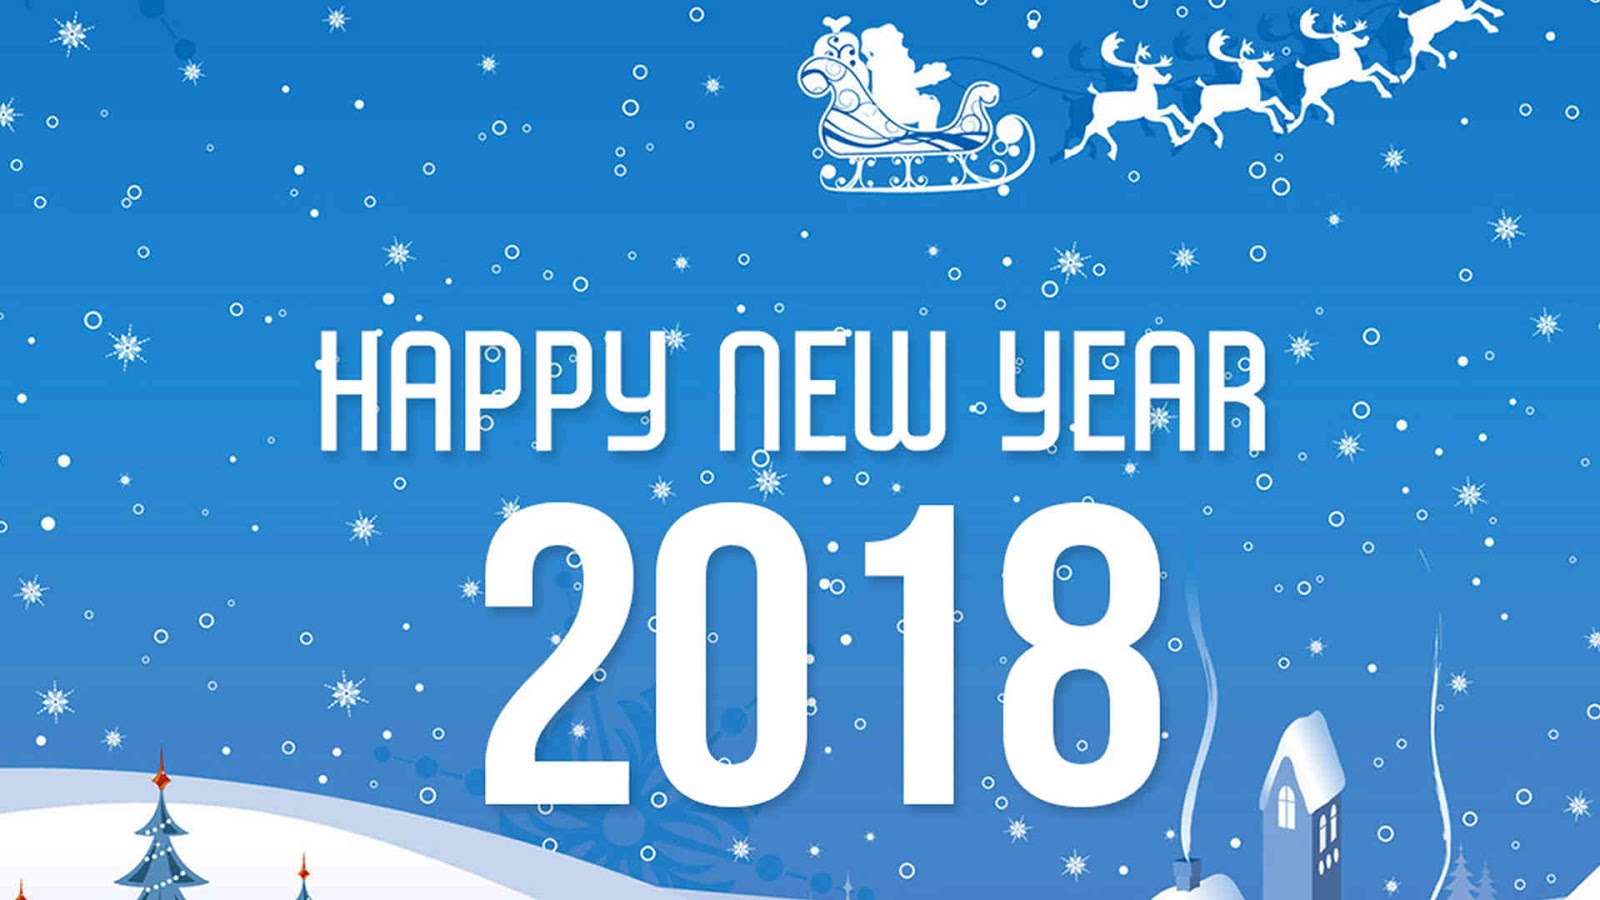 Happy New Year 2018 HD Wallpapers Download